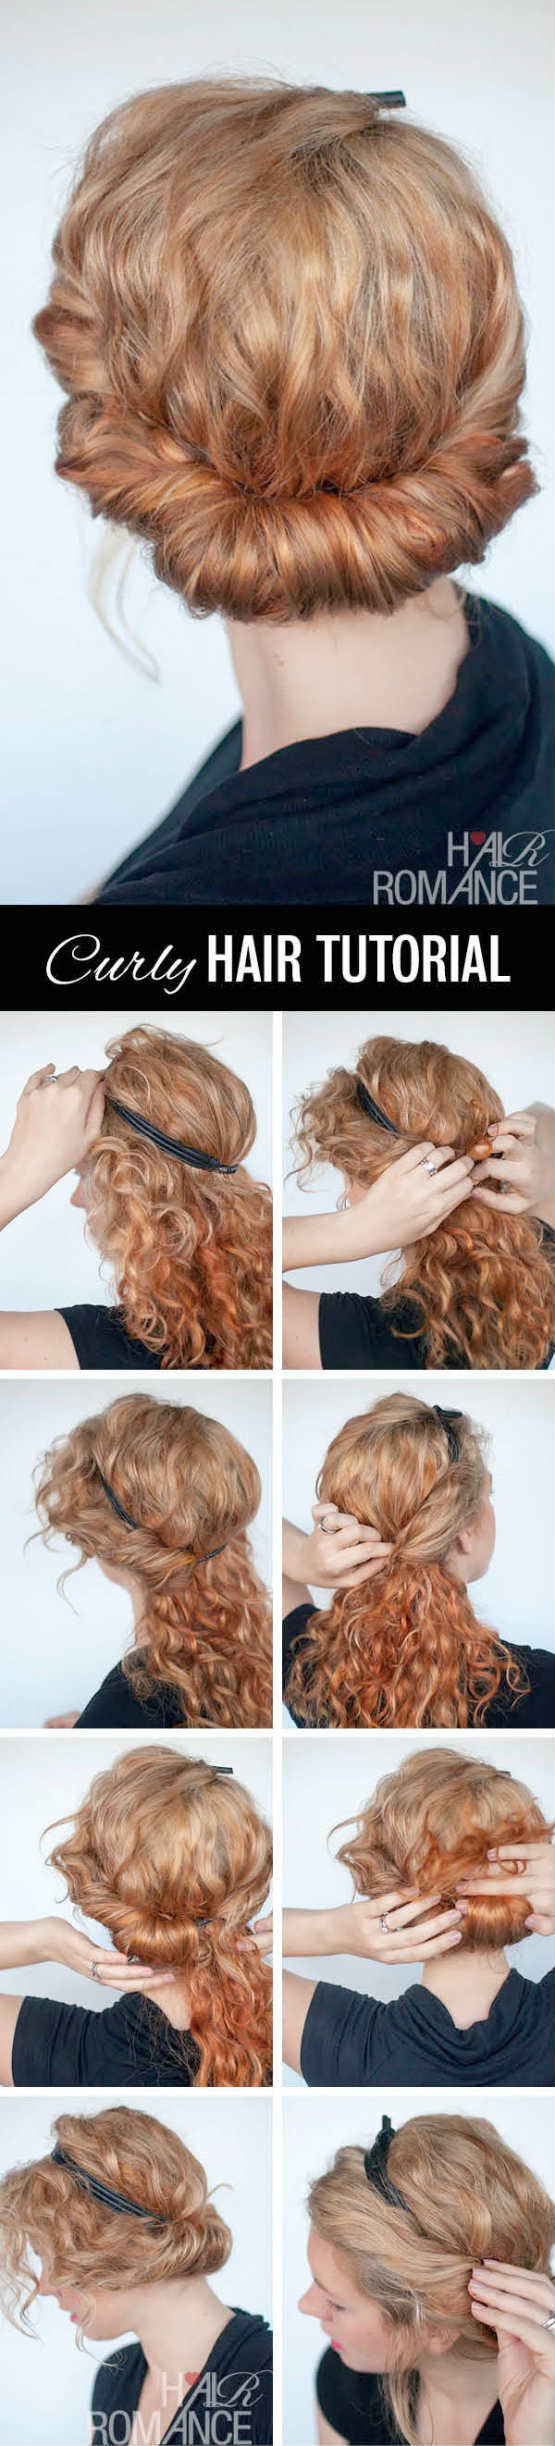 Rolled Headband Updo Tutorial for Homecoming